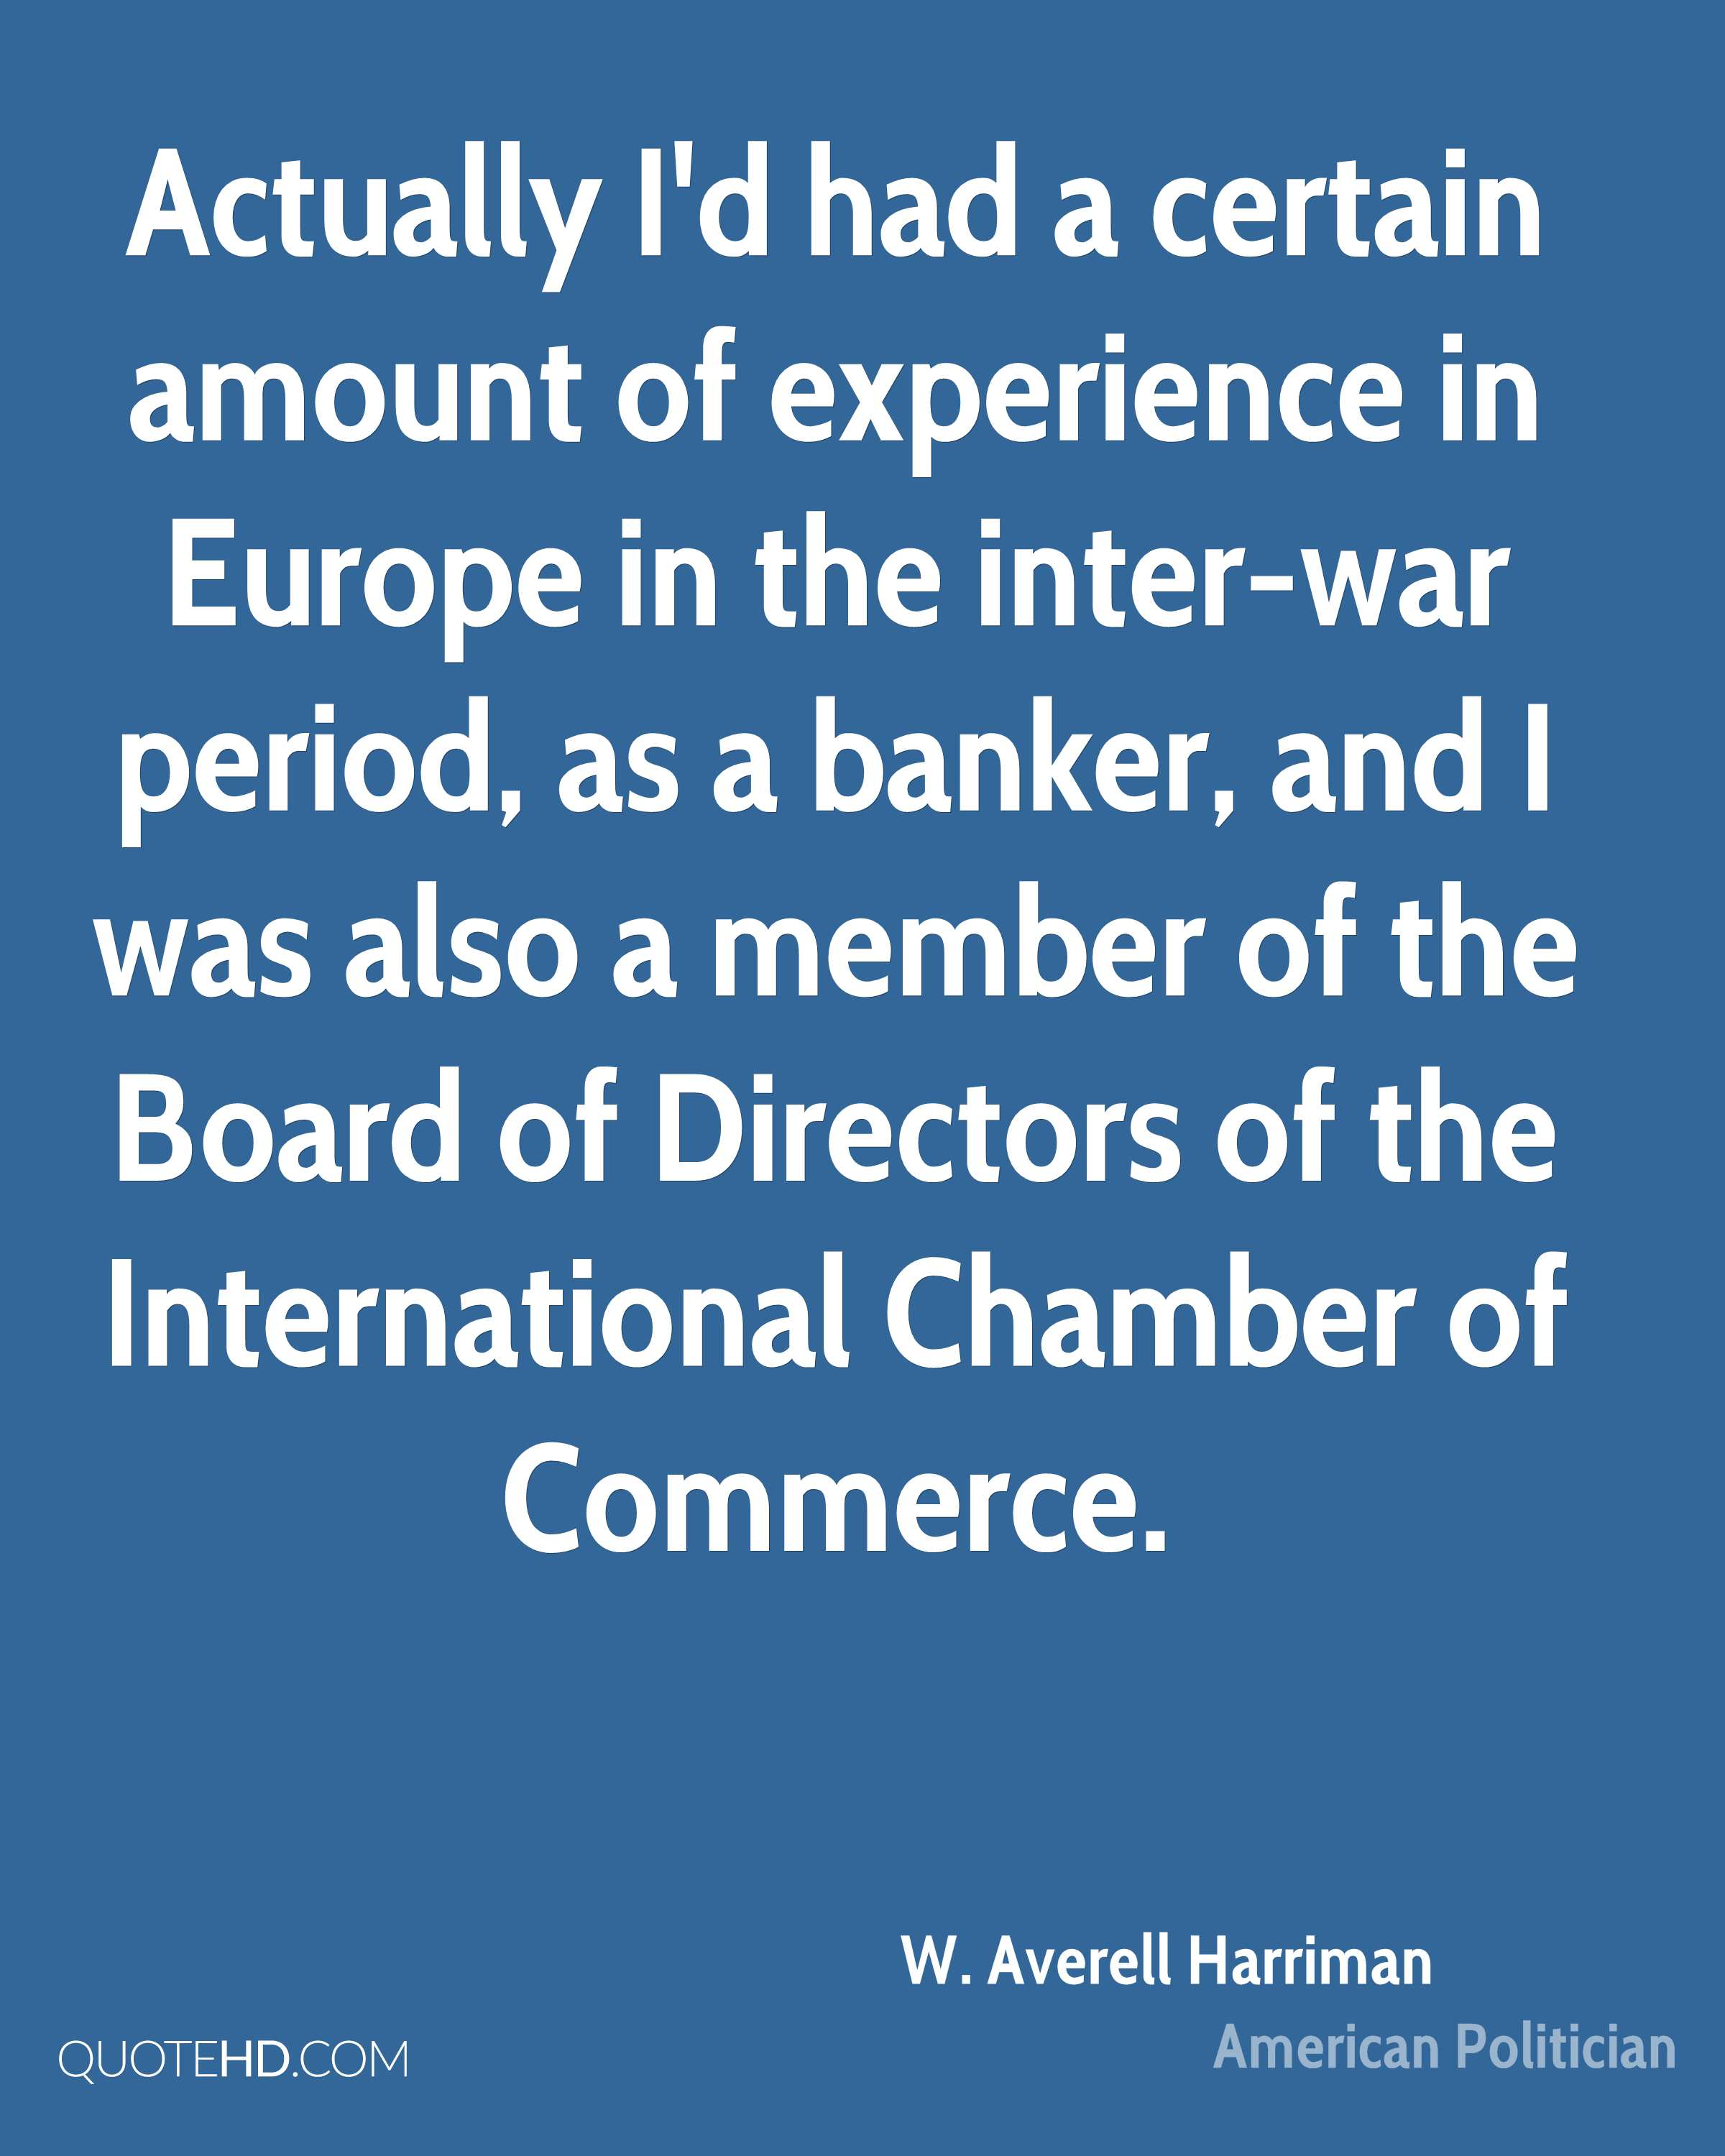 Actually I'd had a certain amount of experience in Europe in the inter-war period, as a banker, and I was also a member of the Board of Directors of the International Chamber of Commerce.